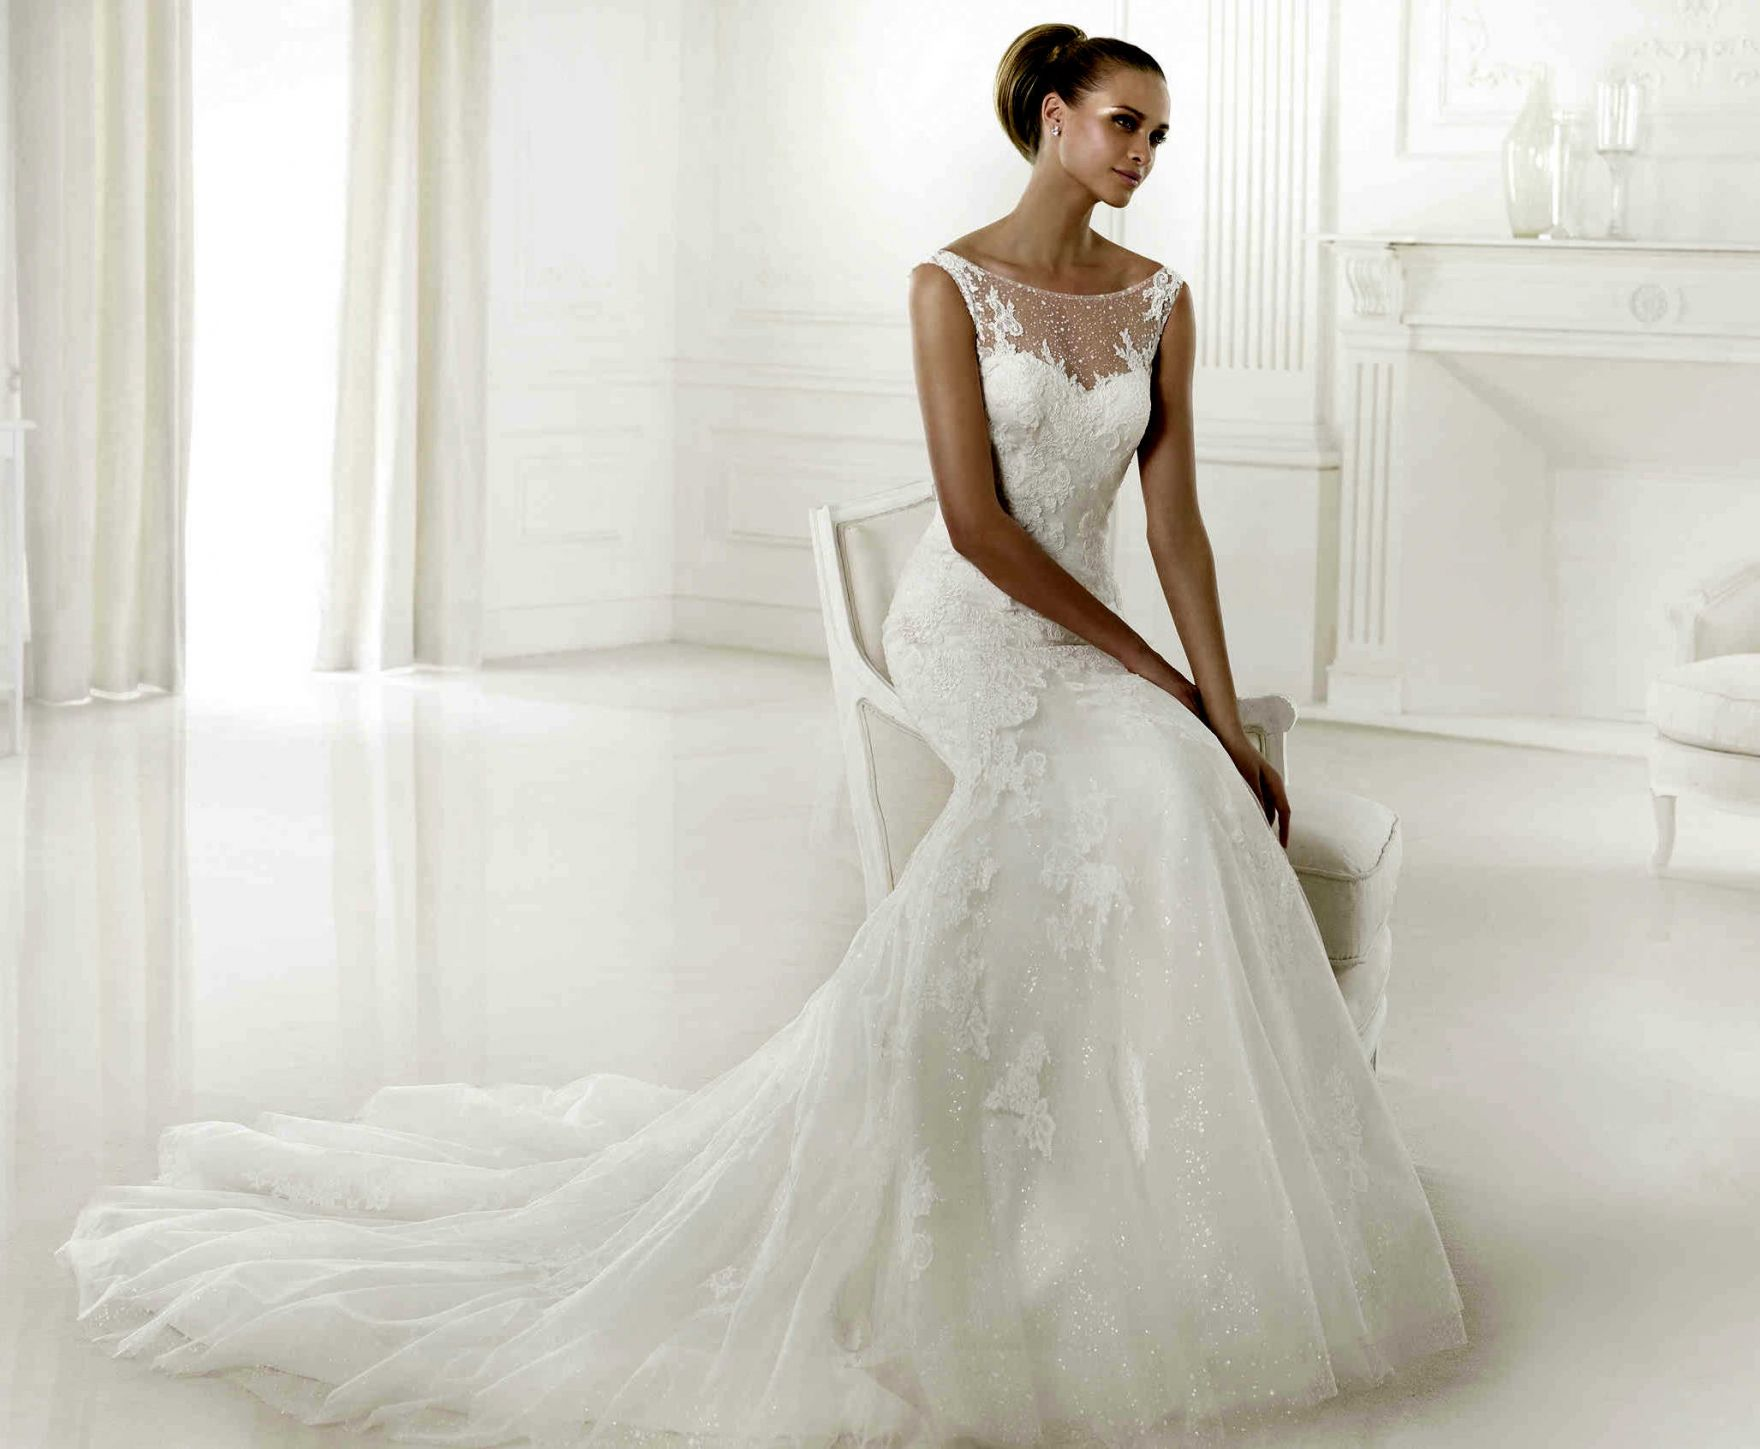 100+ Best Place to Sell My Wedding Dress - Cute Dresses for A ...